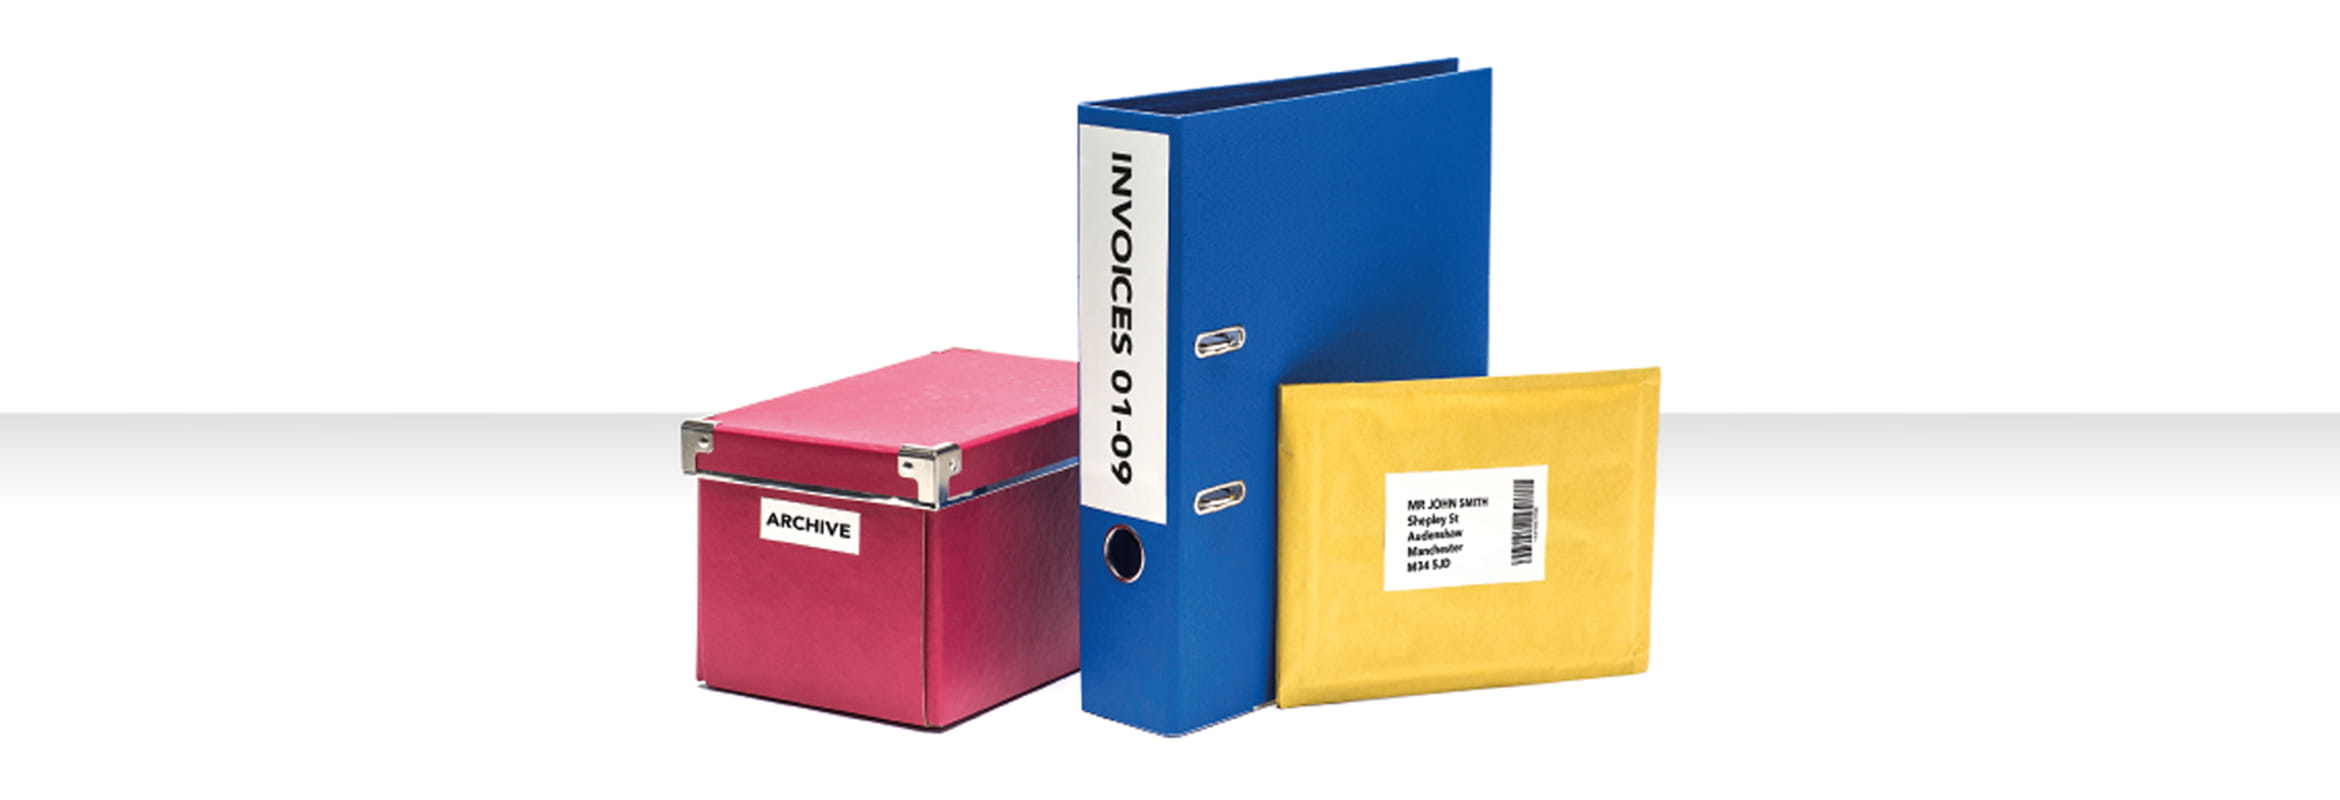 Labels on folders and stationery